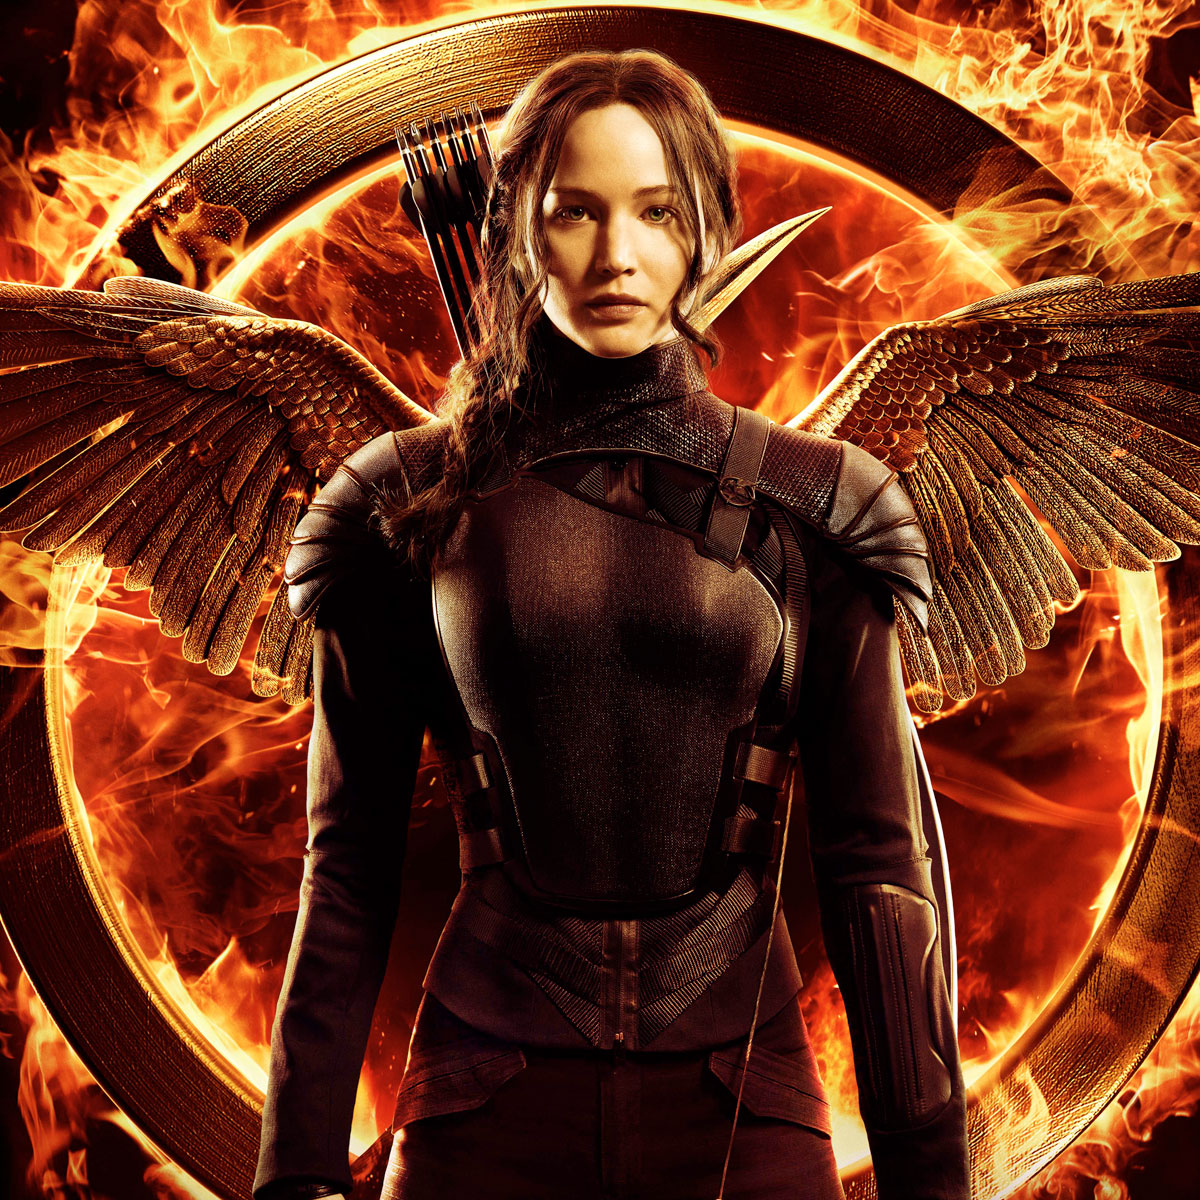 Hunger Games Mockingjay Part 1 Featured Image